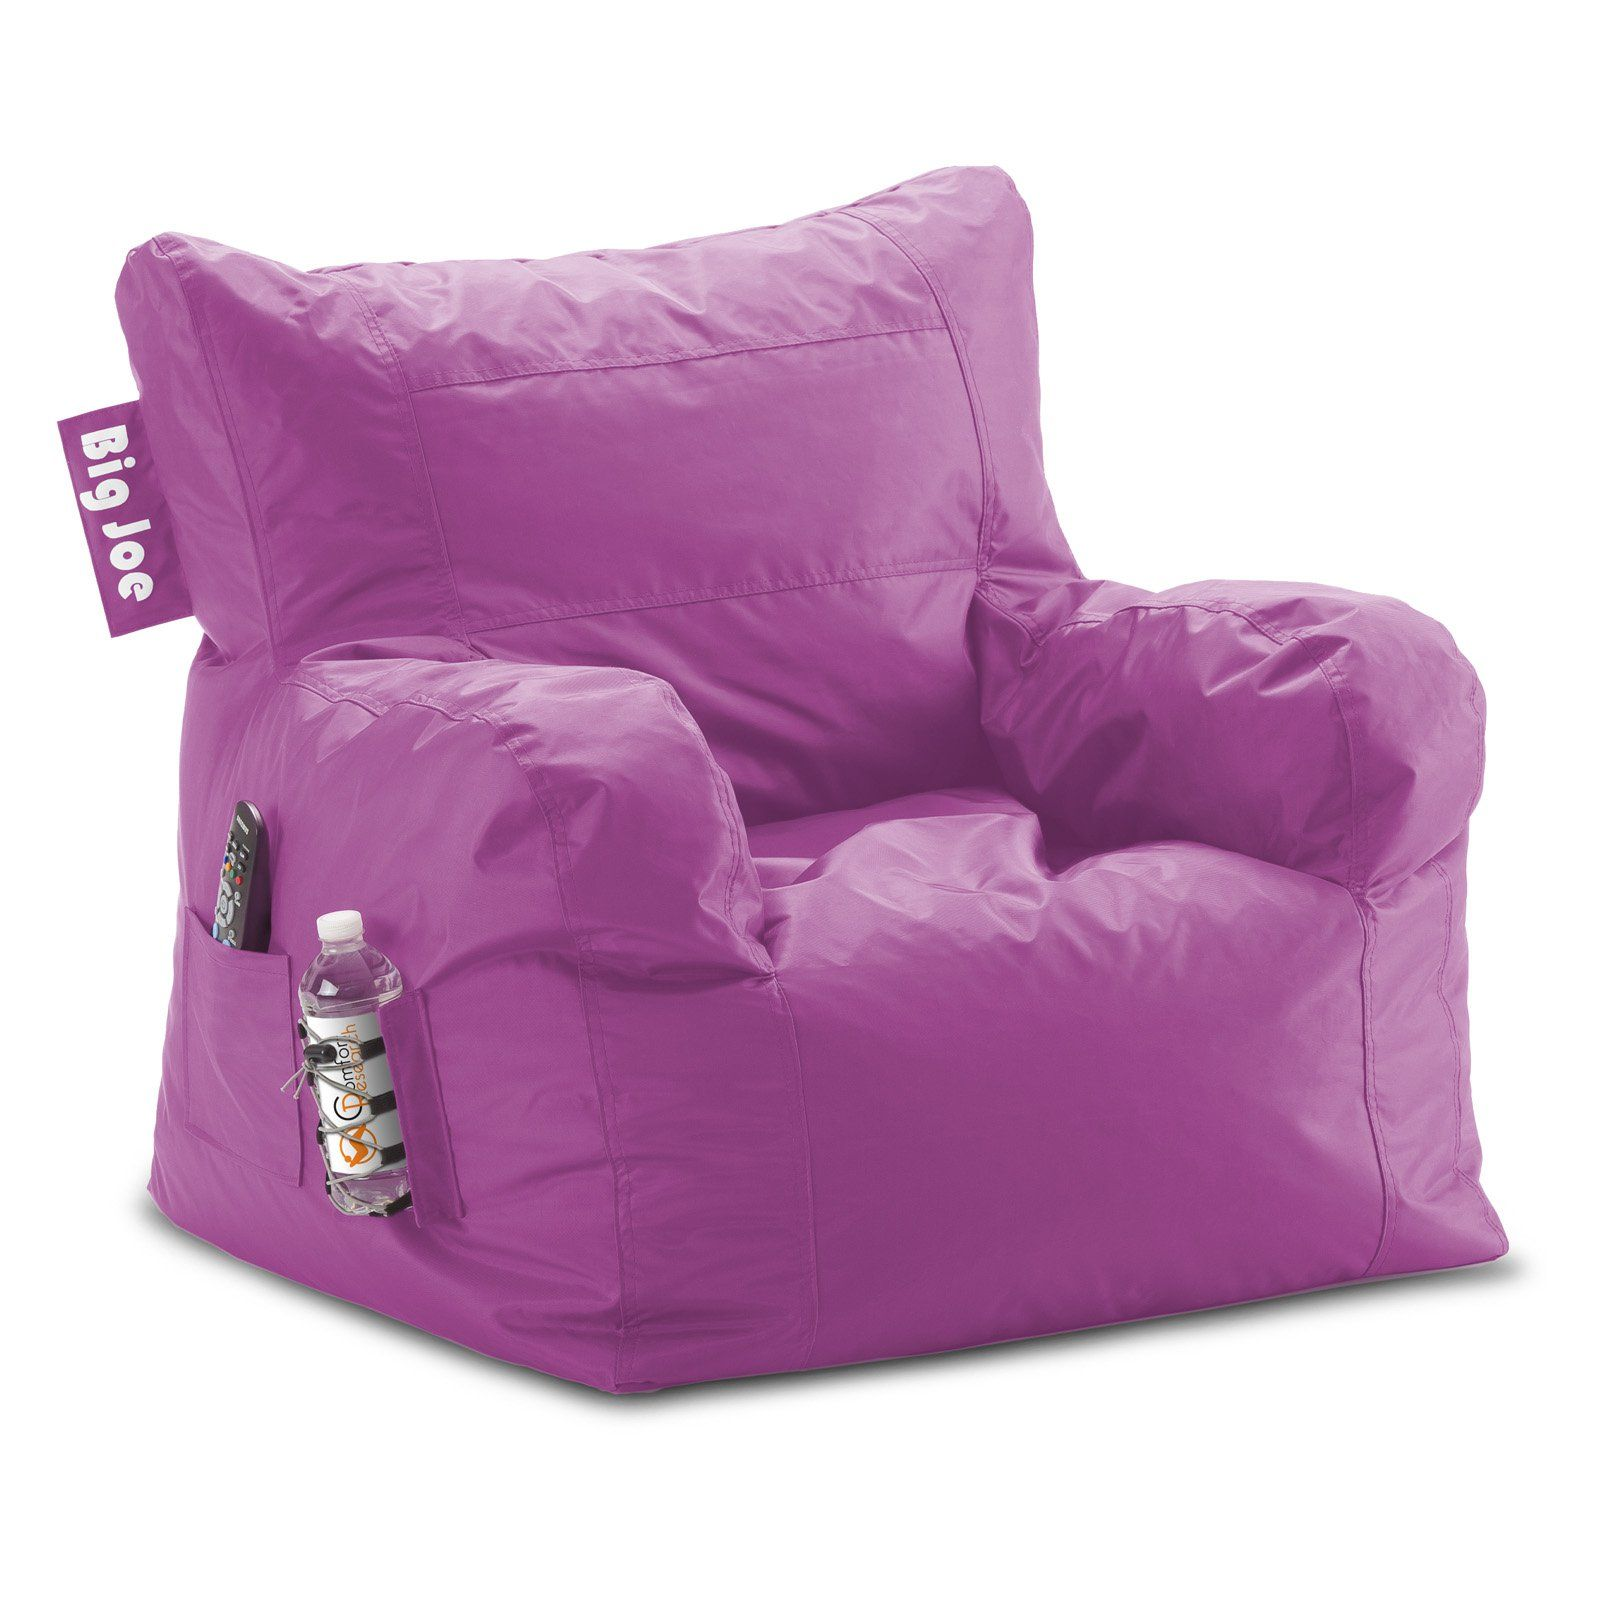 Peachy Big Joe Dorm Bean Bag Chair Radiant Orchid Products In Pabps2019 Chair Design Images Pabps2019Com